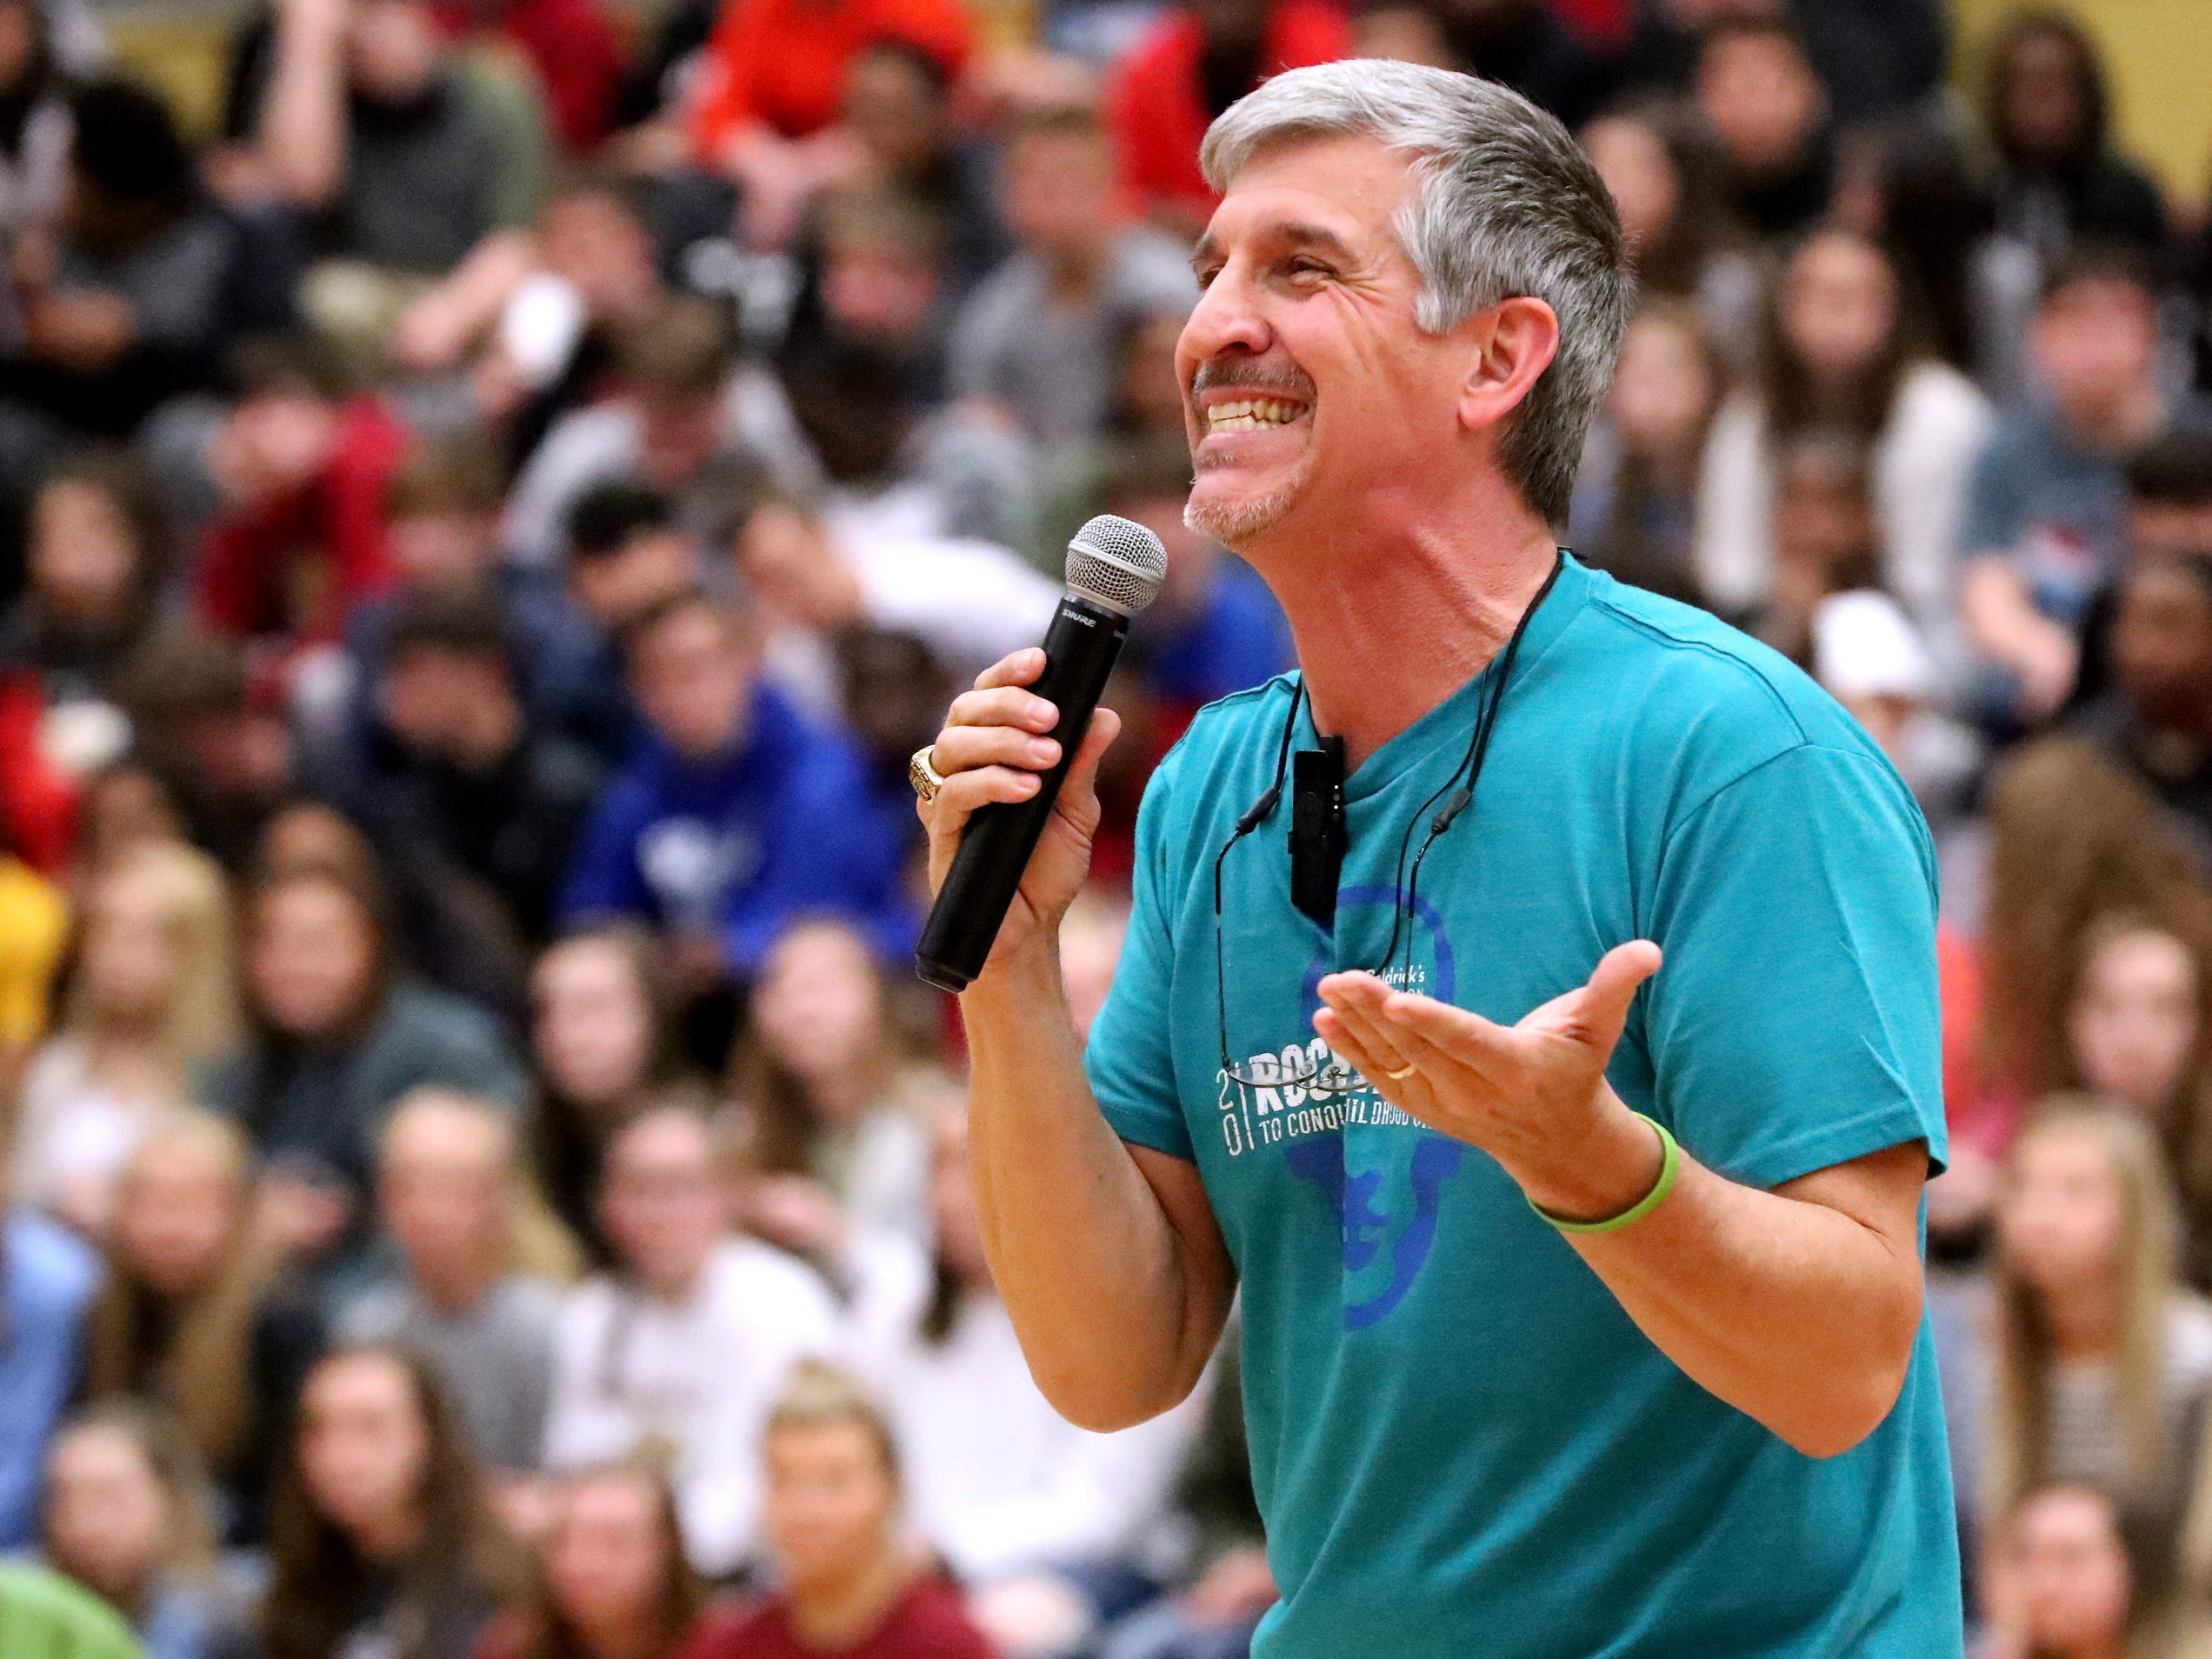 Lamar Davis narrates the sixth annual Brave the Shave fundraiser to benefit St. Baldrick's Foundation at Riverdale, on Thursday, March 21, 2019. The organization raises funds and awareness for childhood cancer.